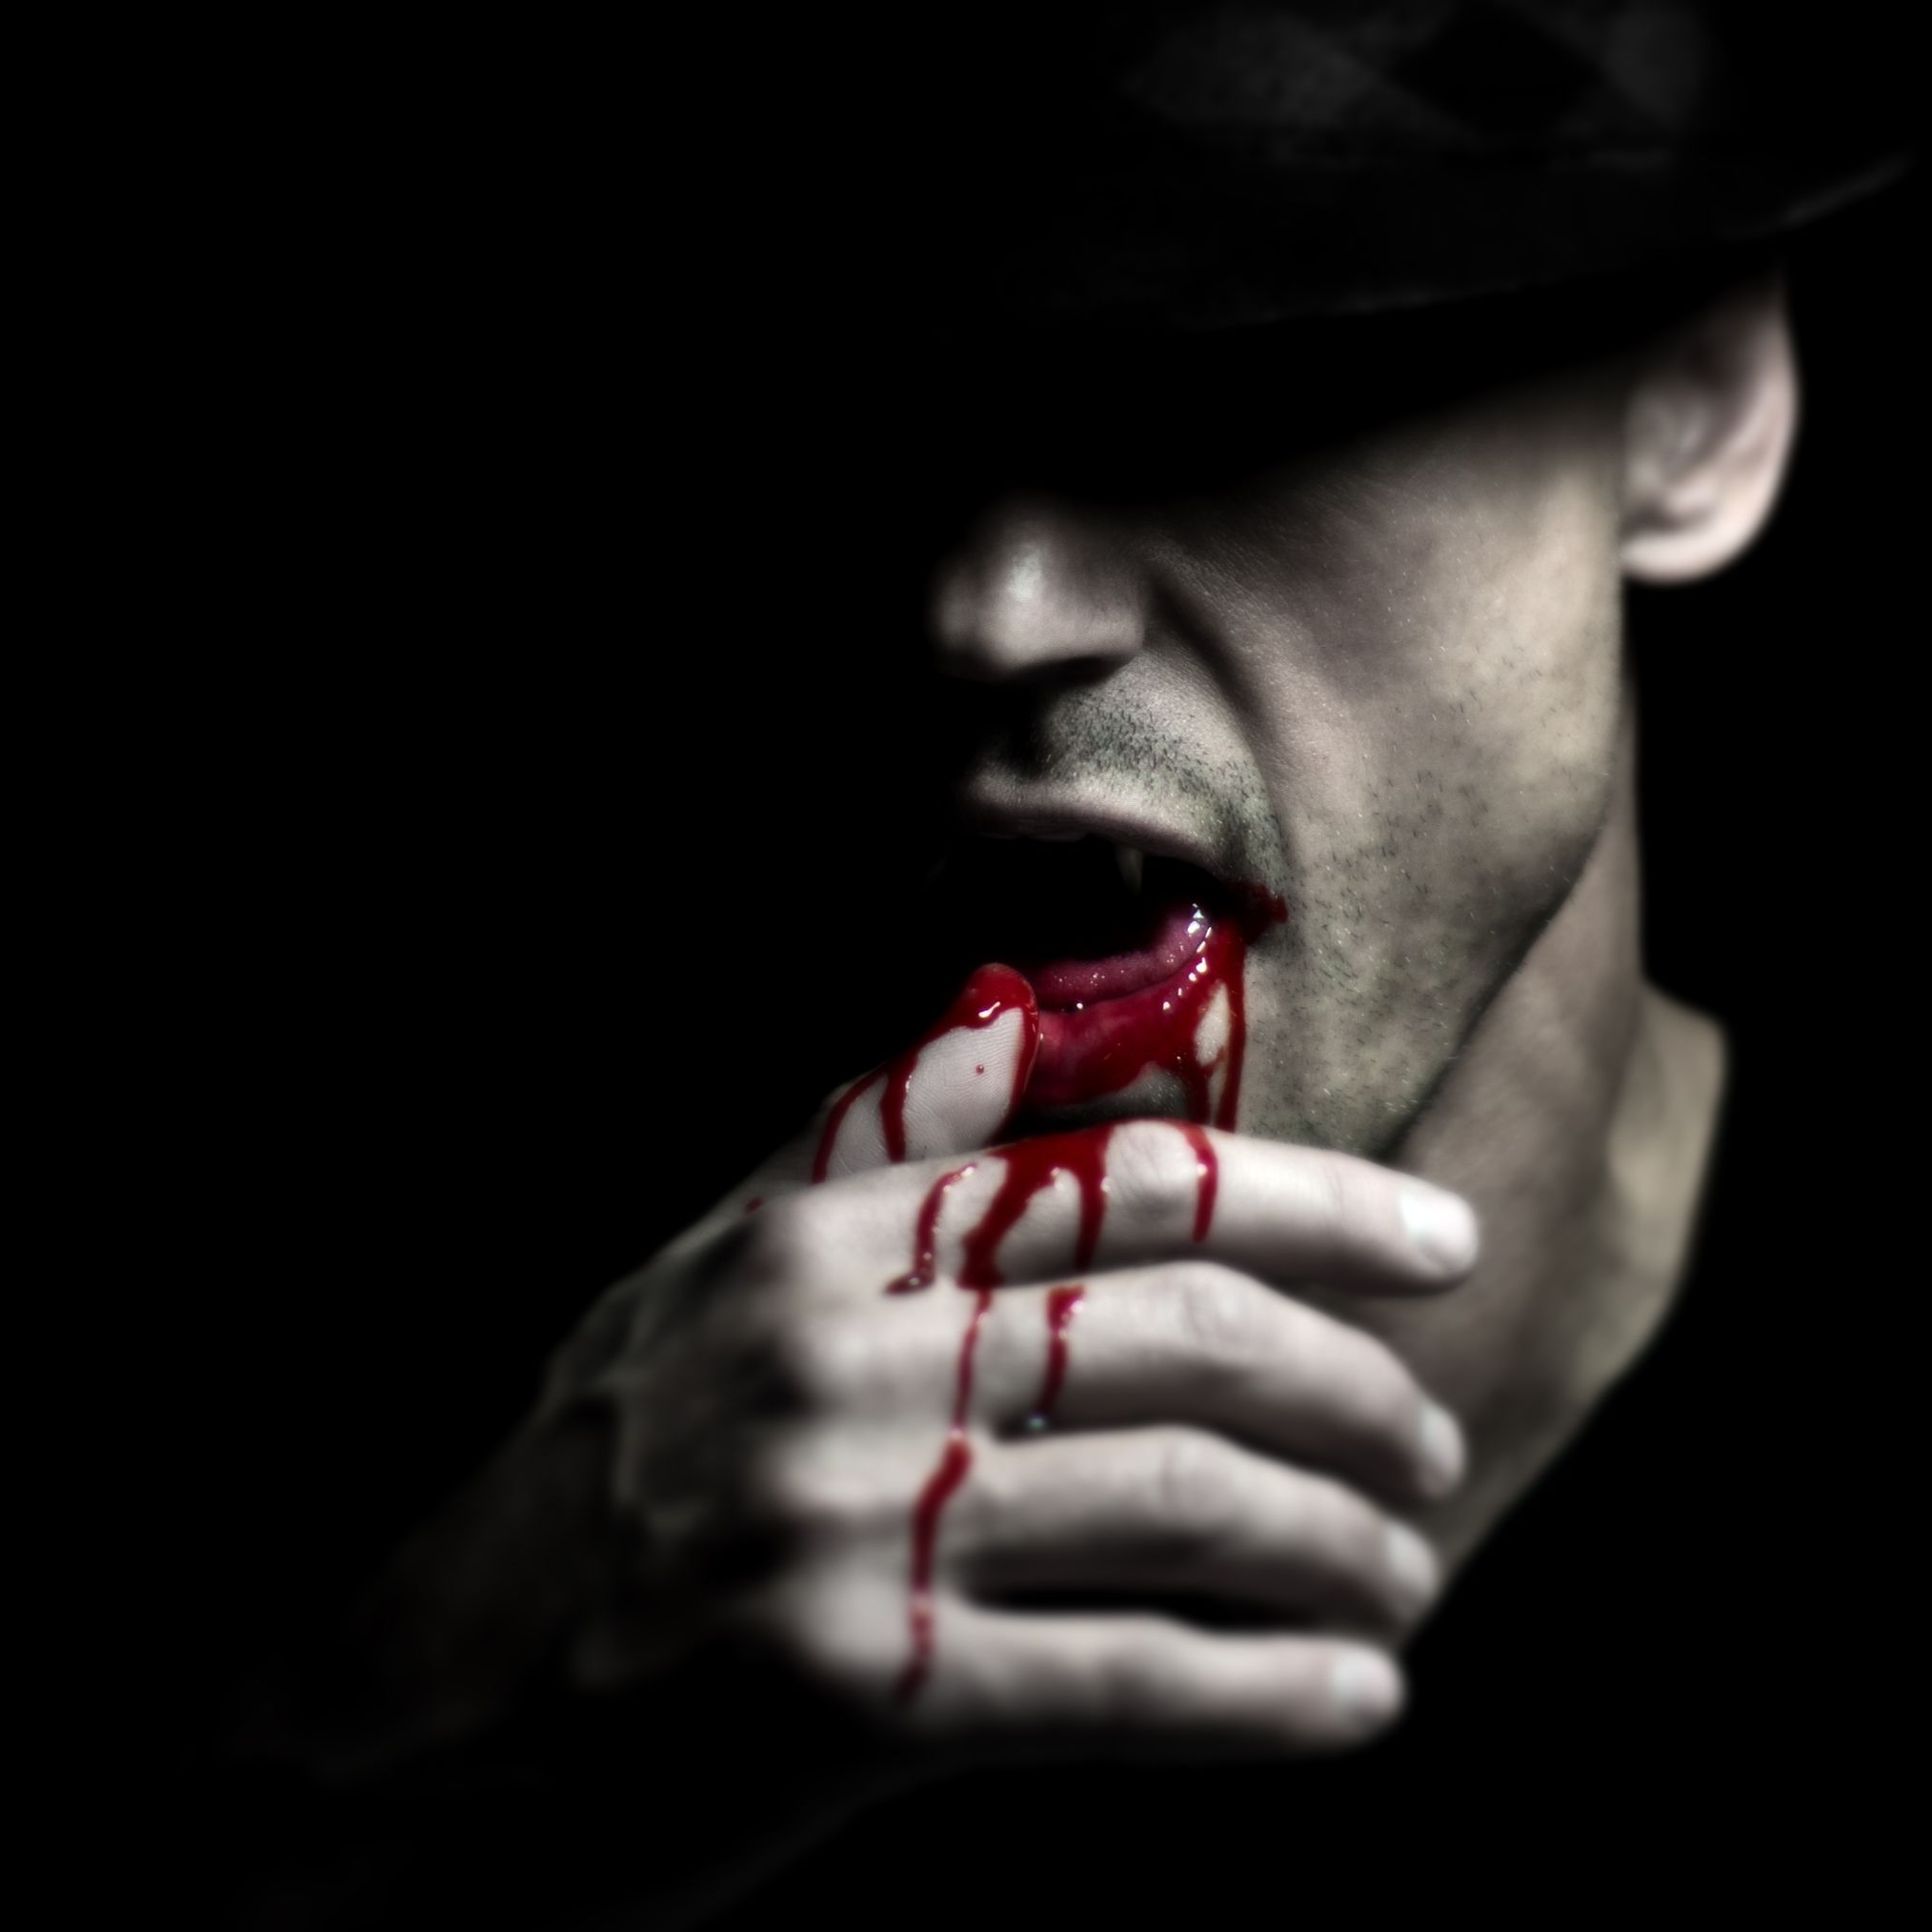 A vampire wiping the blood off of his mouth.